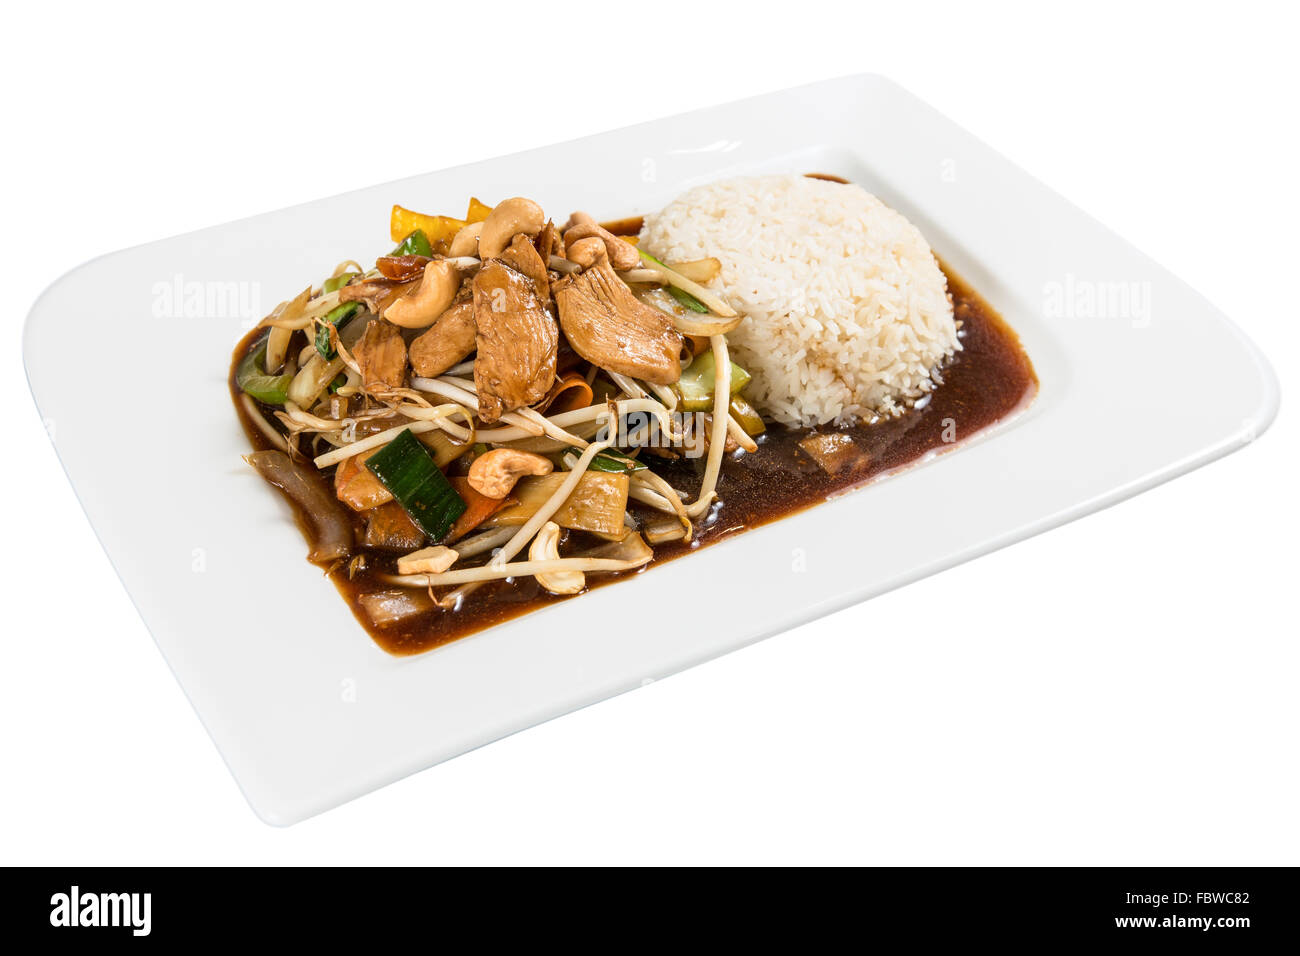 Chinese Asia Food. Pork, bean sprouts with vegetables, cashjew cores  and rice. Background white isolated. - Stock Image